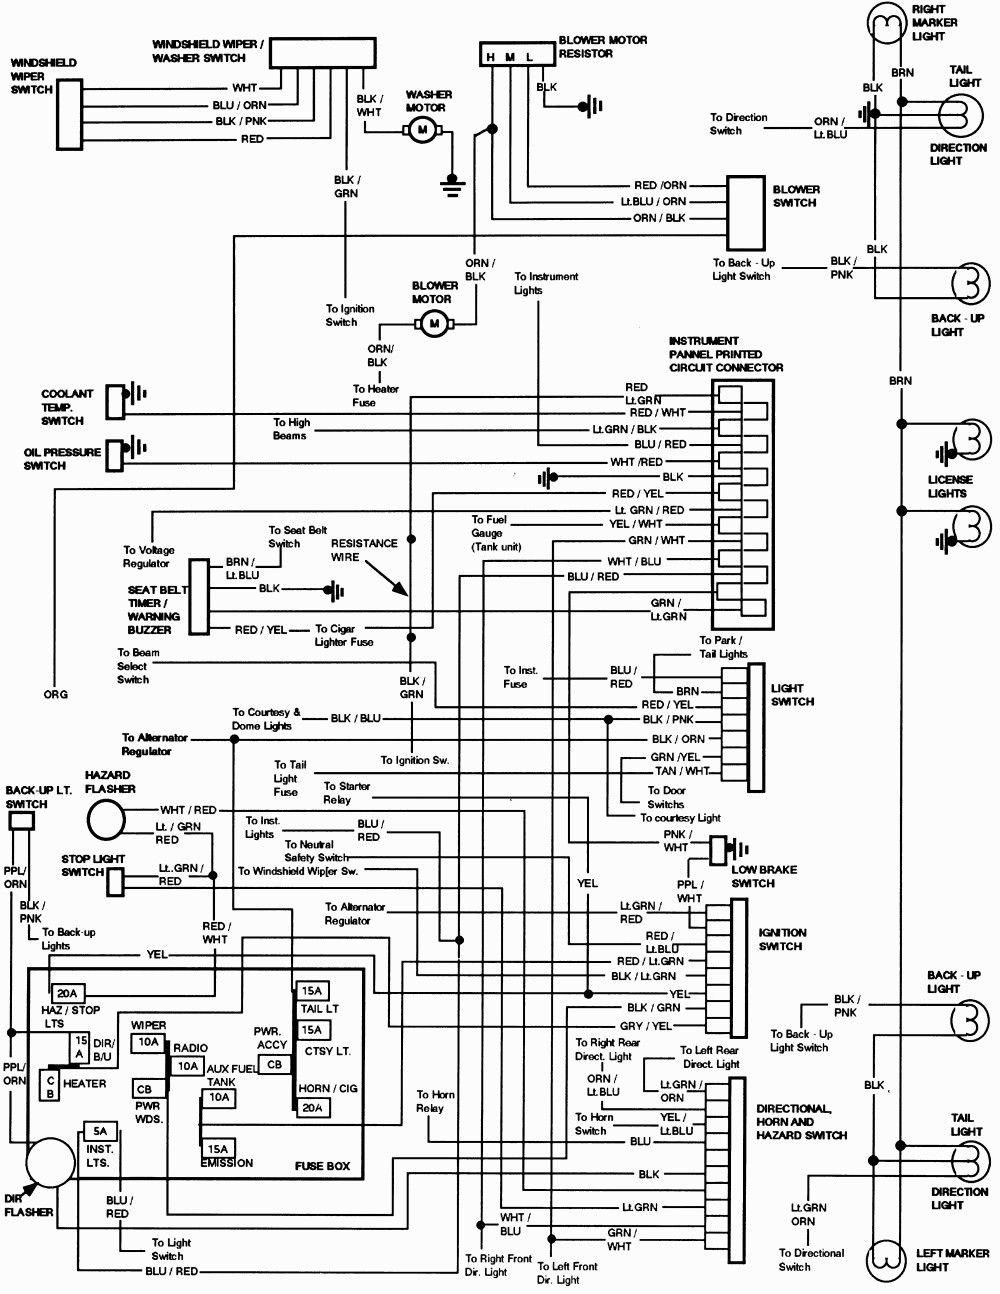 1985 ford f 350 wiring diagram diagram schematic ideas 1999 ford f250 super duty trailer wiring diagram 1993 ford f 250 4x4 wiring diagram